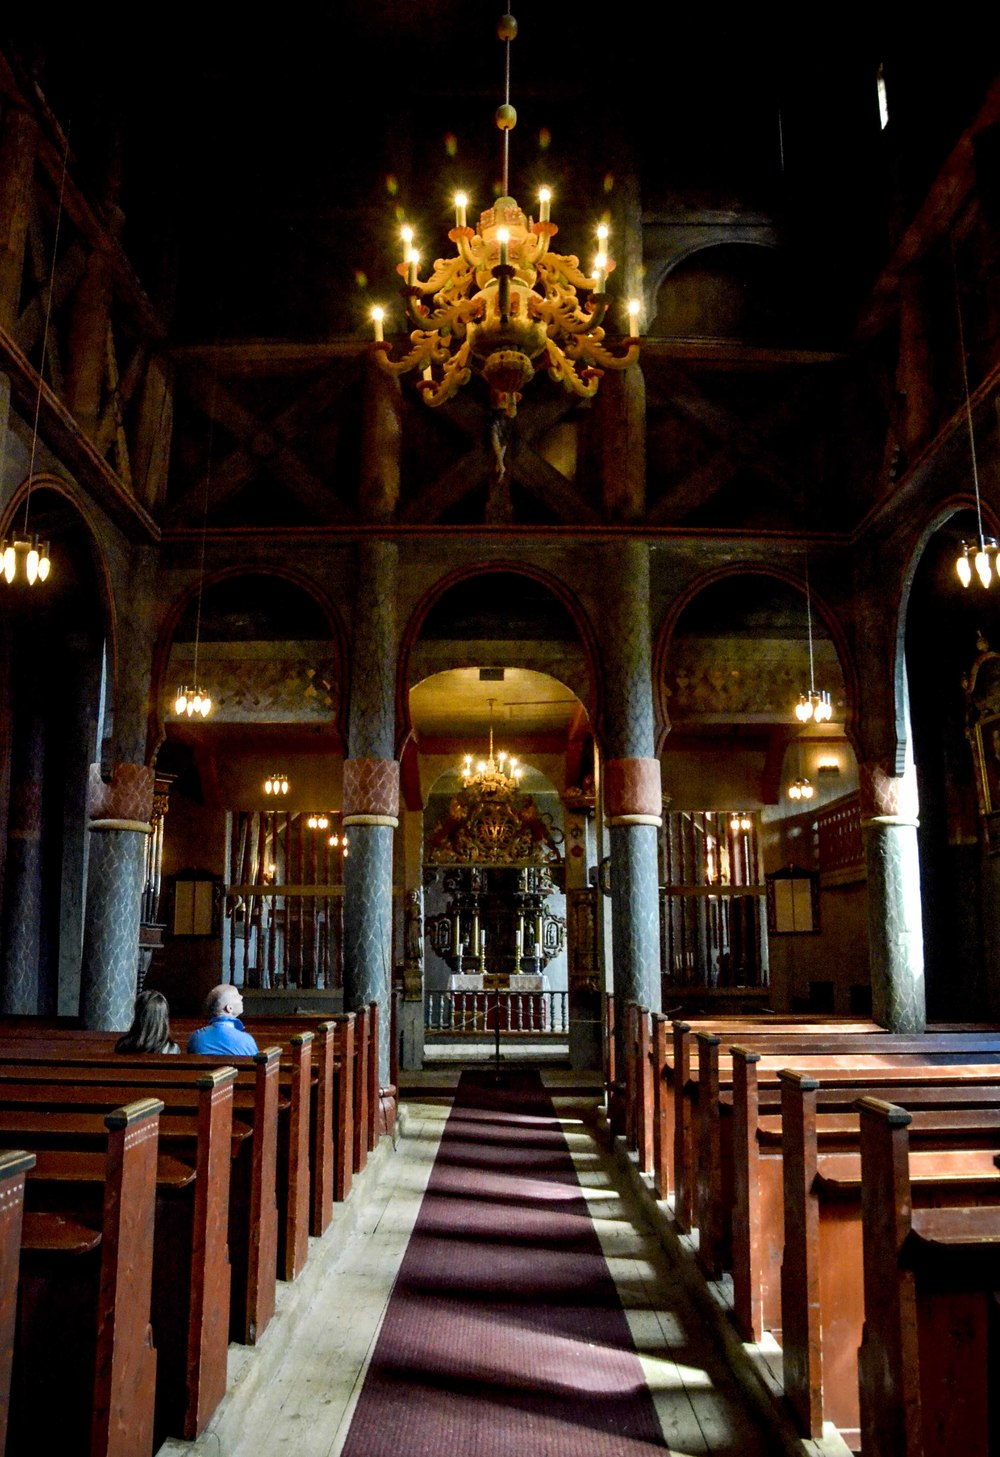 Interiors Ringebu stave church, July 2015